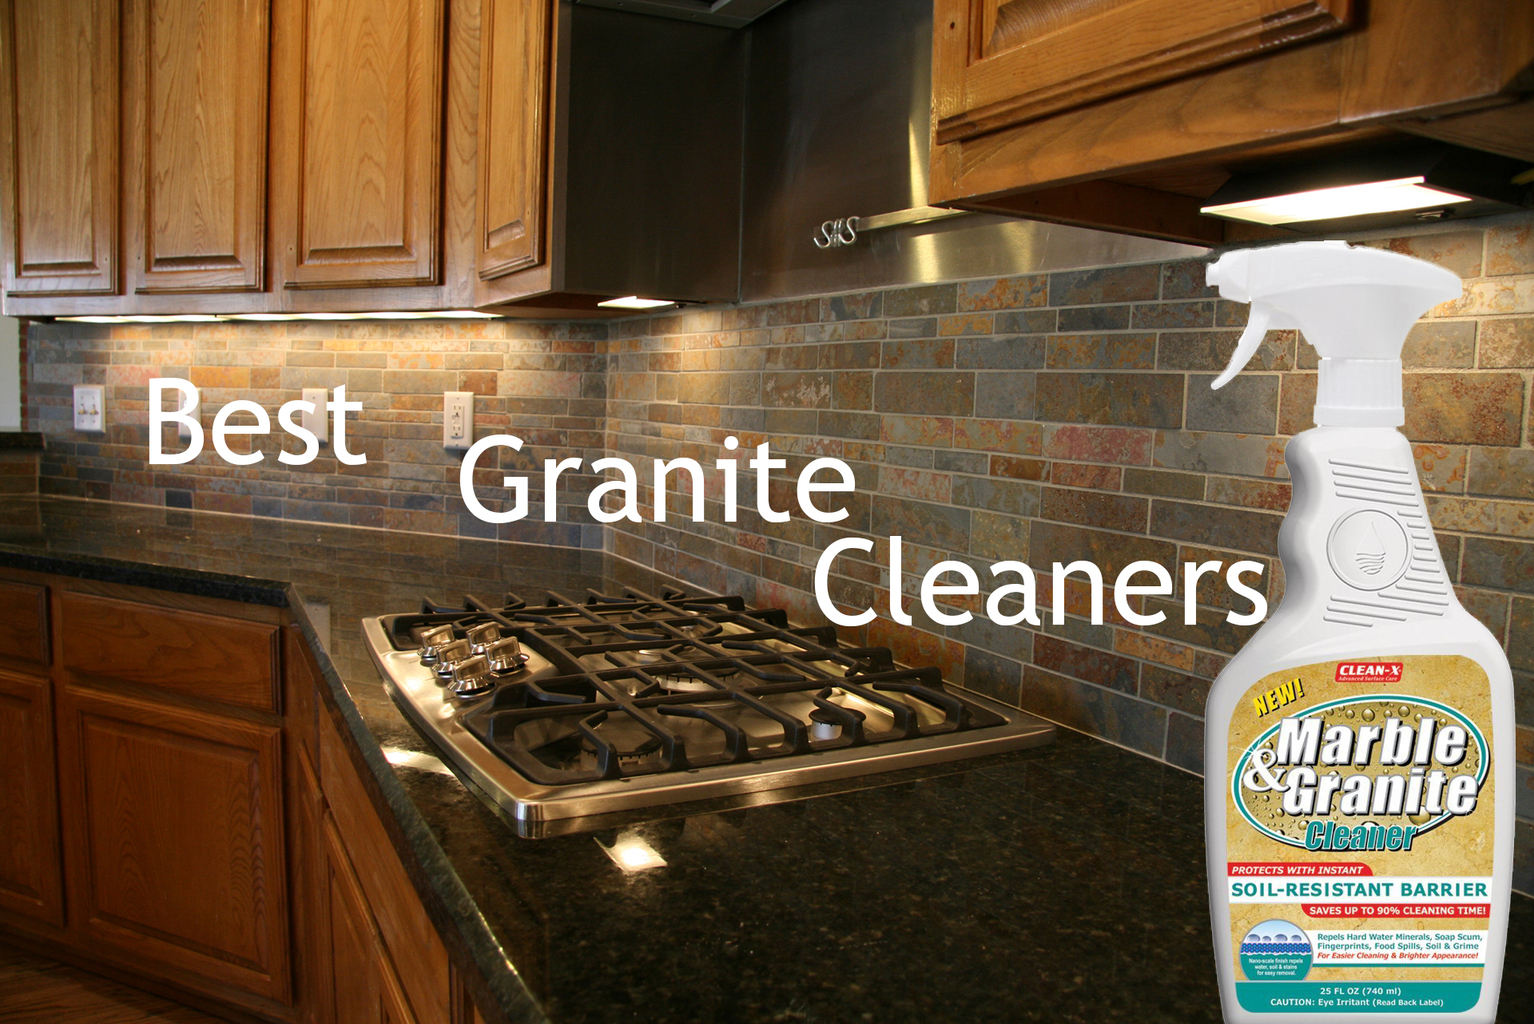 sealer countertop categories patch laticrete cleaner granite osh sealers p marble tile repair paint